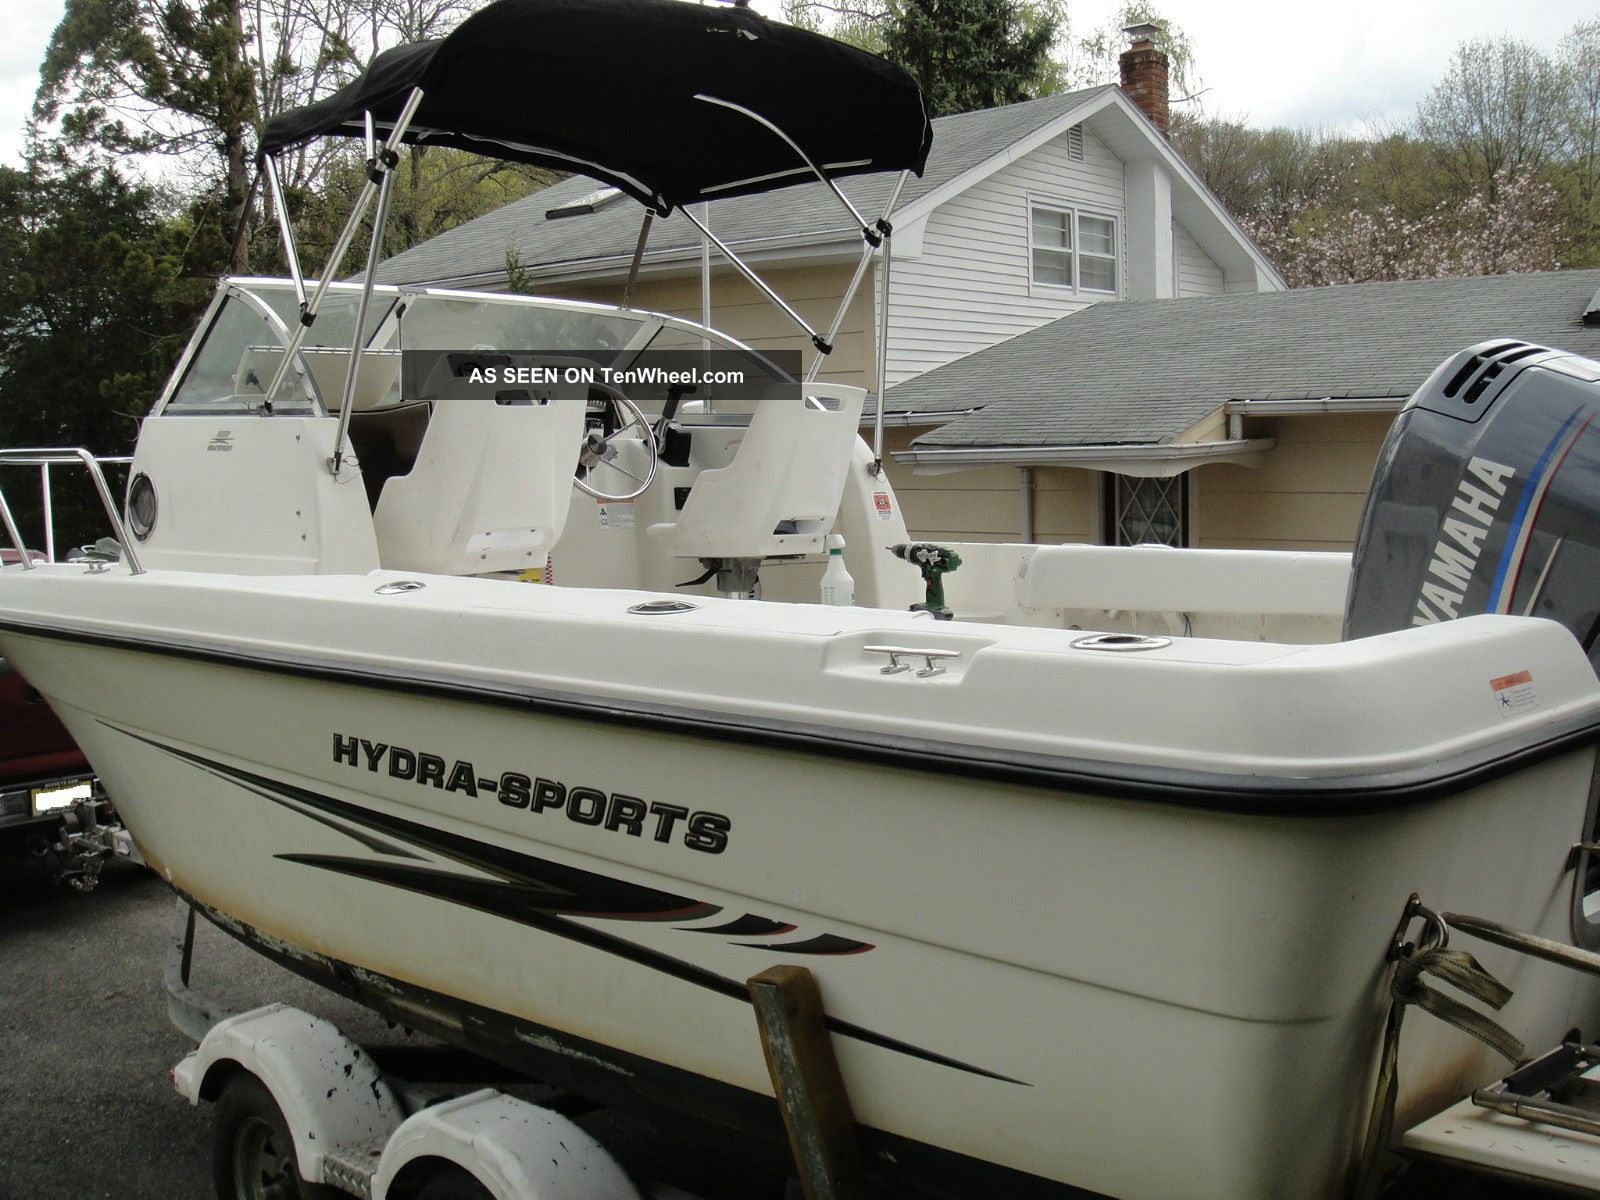 2003 Hydra - Sports 212wa Offshore Saltwater Fishing photo